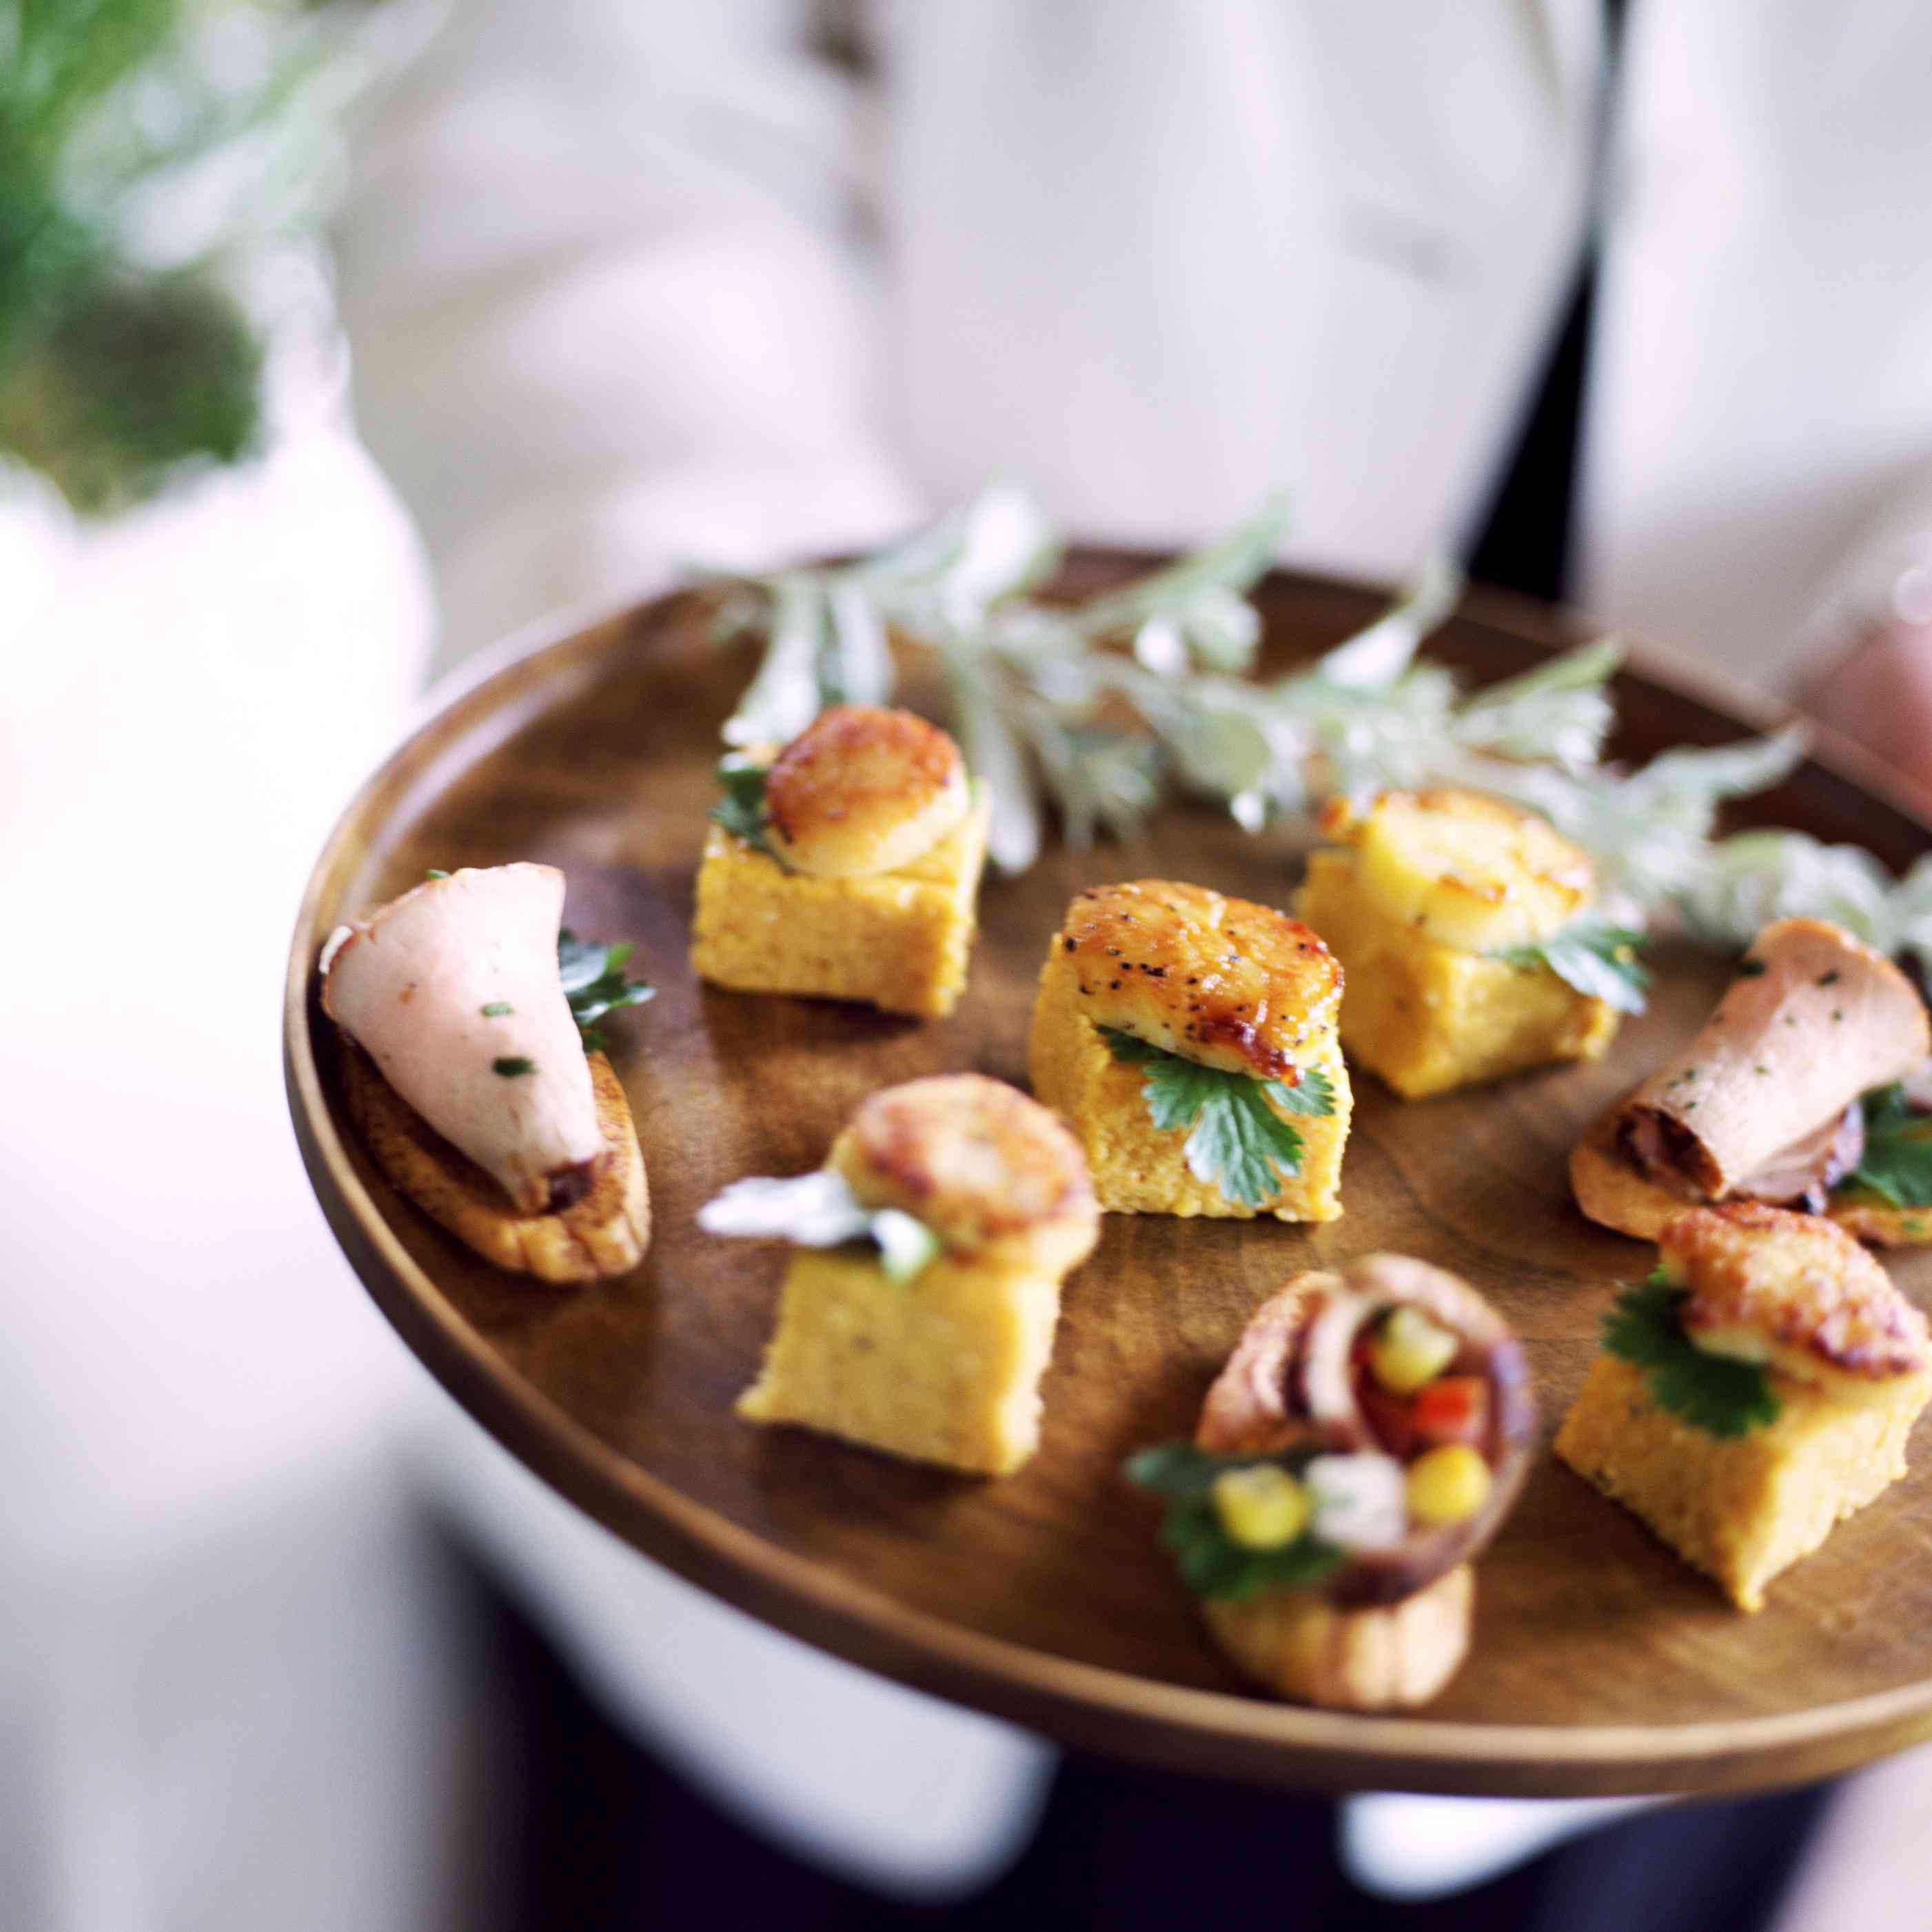 Wedding Cocktail Food Ideas: 17 Passed Hors D'Oeuvres Your Wedding Guests Will Really Love